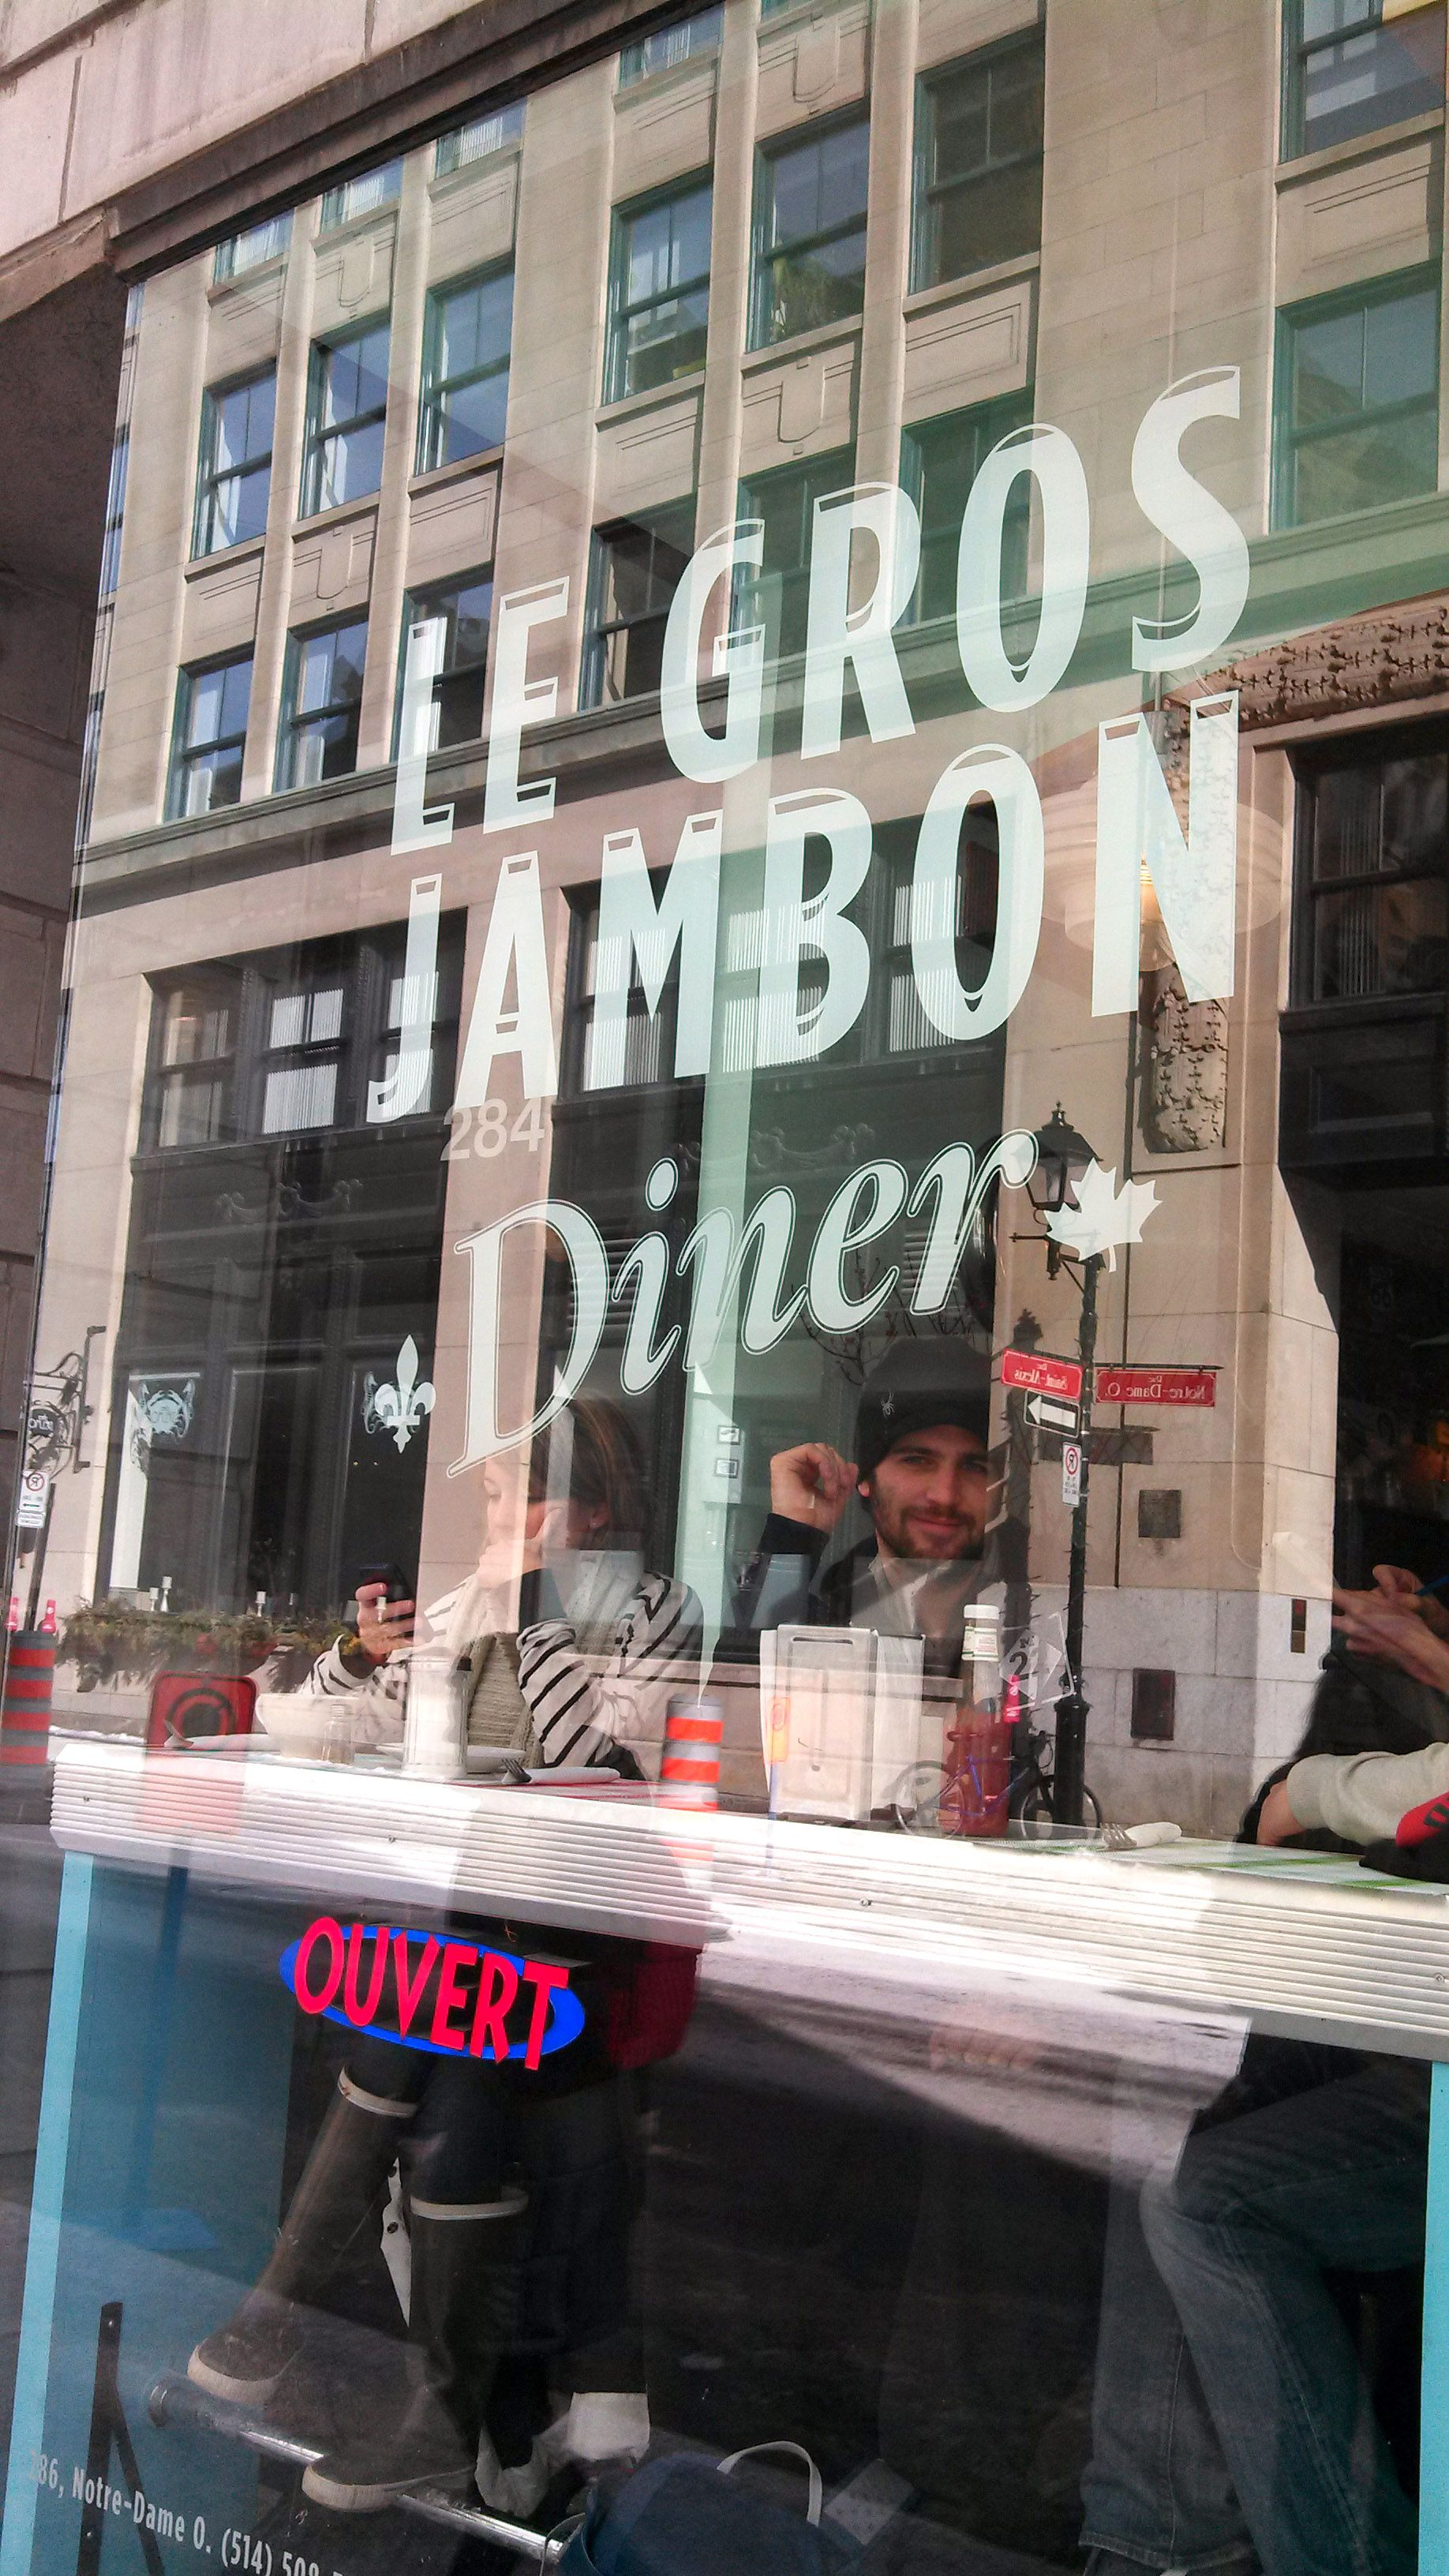 Le Gros Jambon - Montreal - Awesome Fried Chicken & Waffles